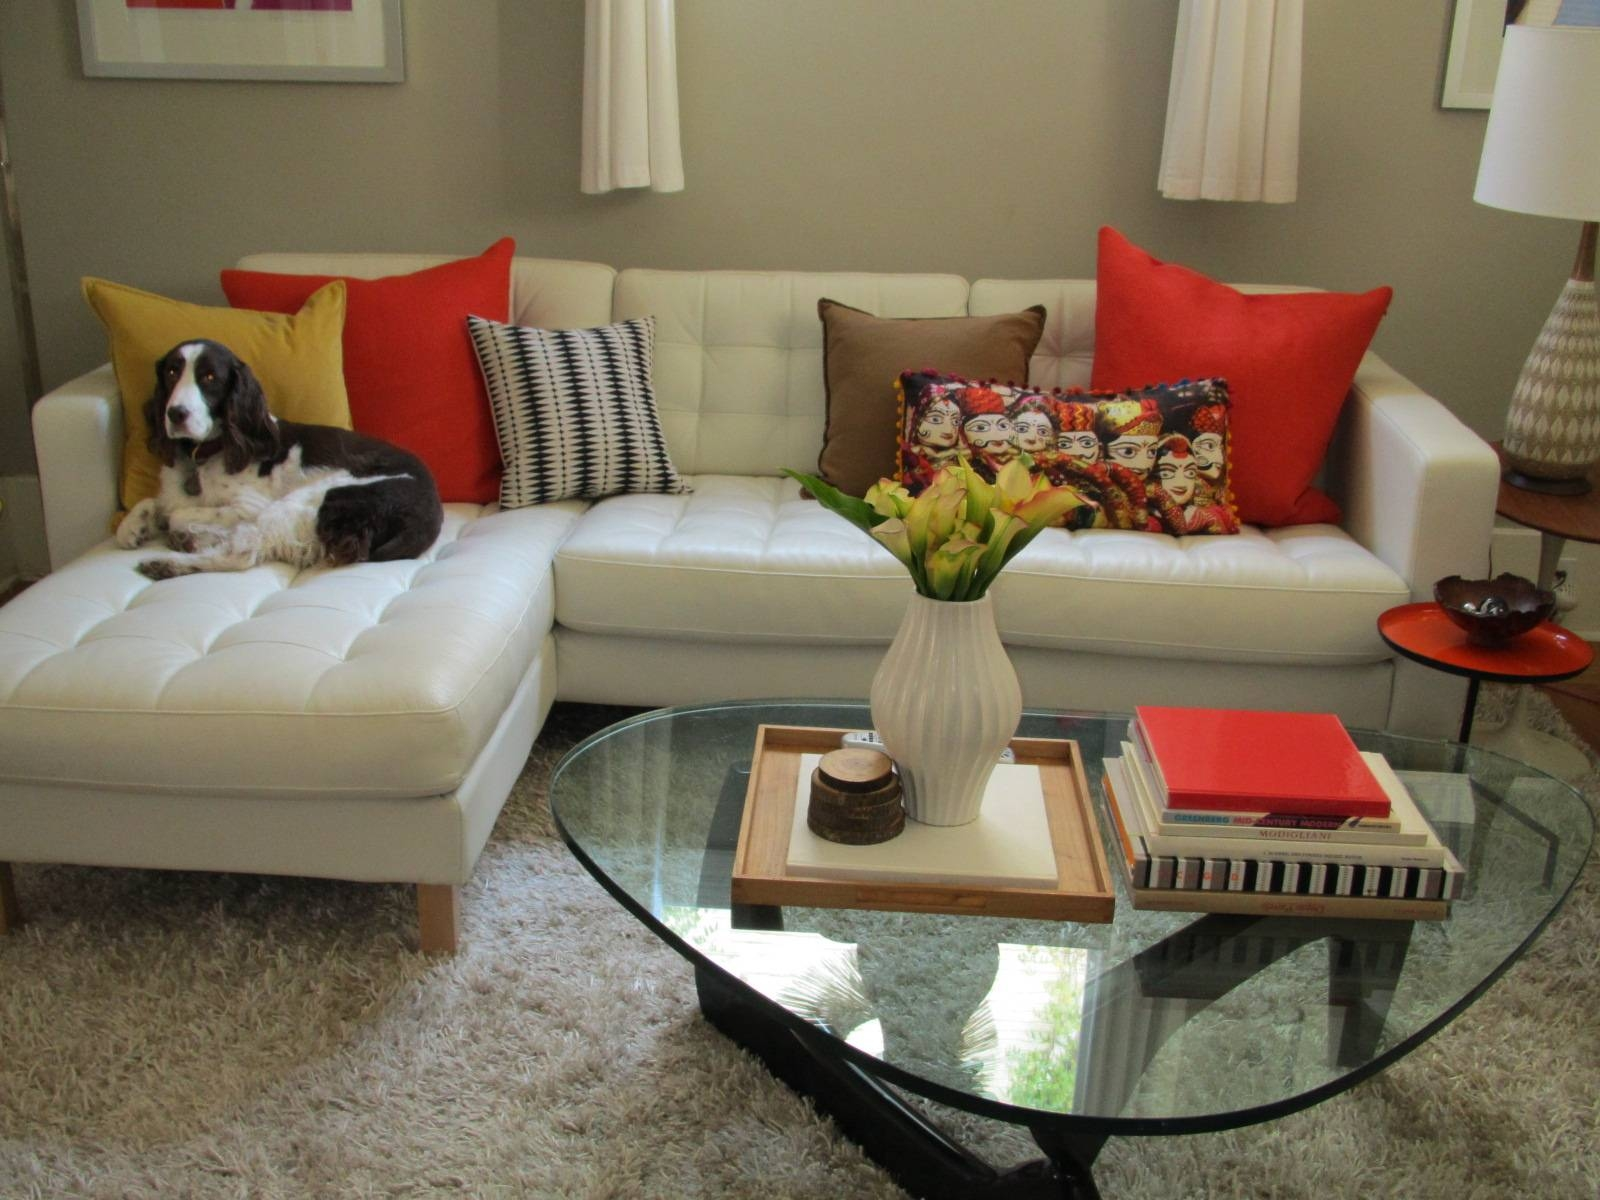 21 Cool Accent Pillows For Sofa - Inspirationseek in Black And White Sofas (Image 3 of 30)